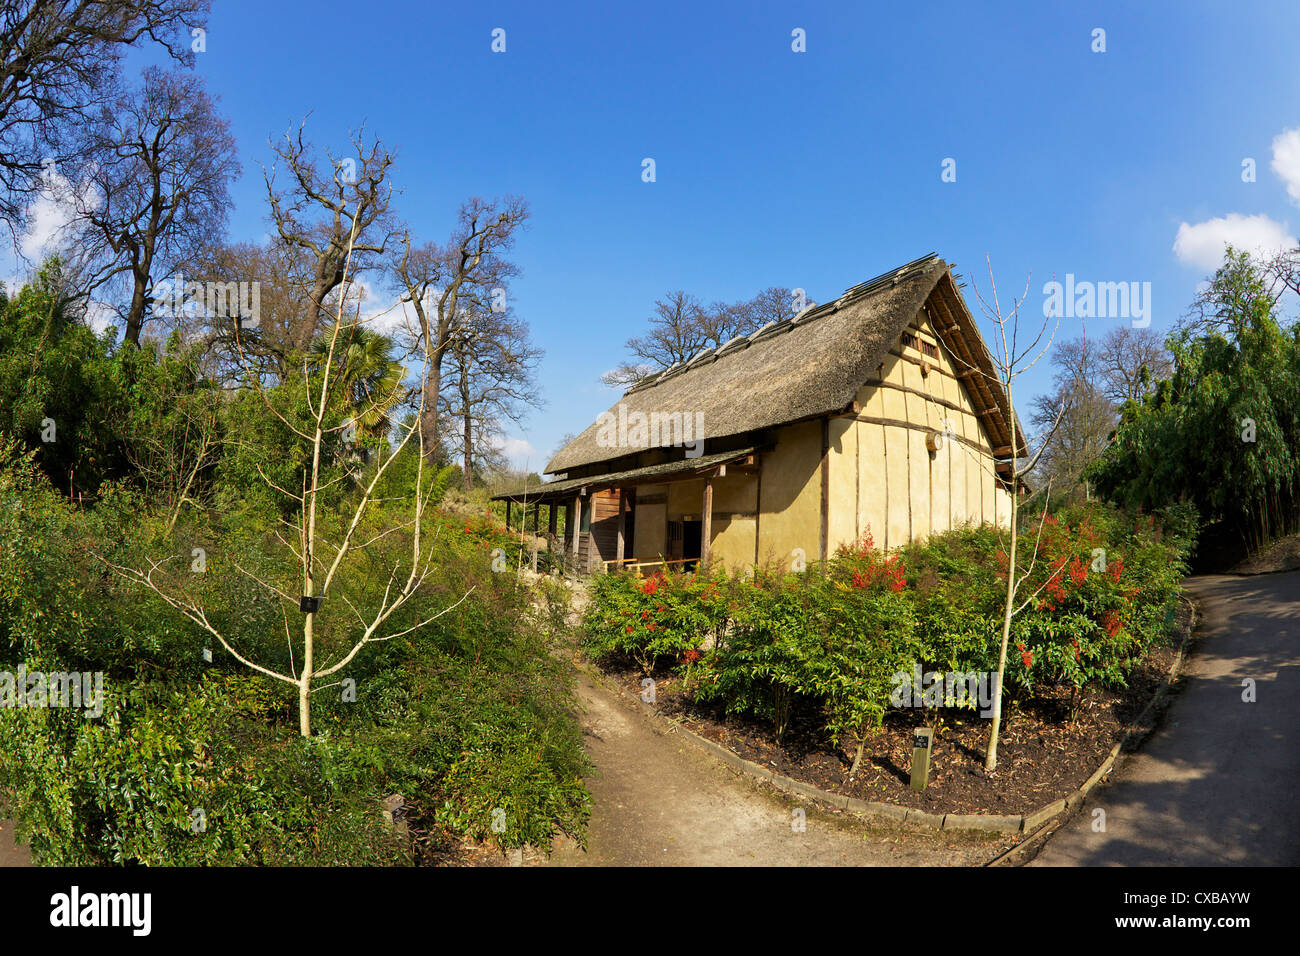 Japanese Minka House, Royal Botanic Gardens, Kew, UNESCO World Heritage Site, London, England, United Kingdom, Europe - Stock Image